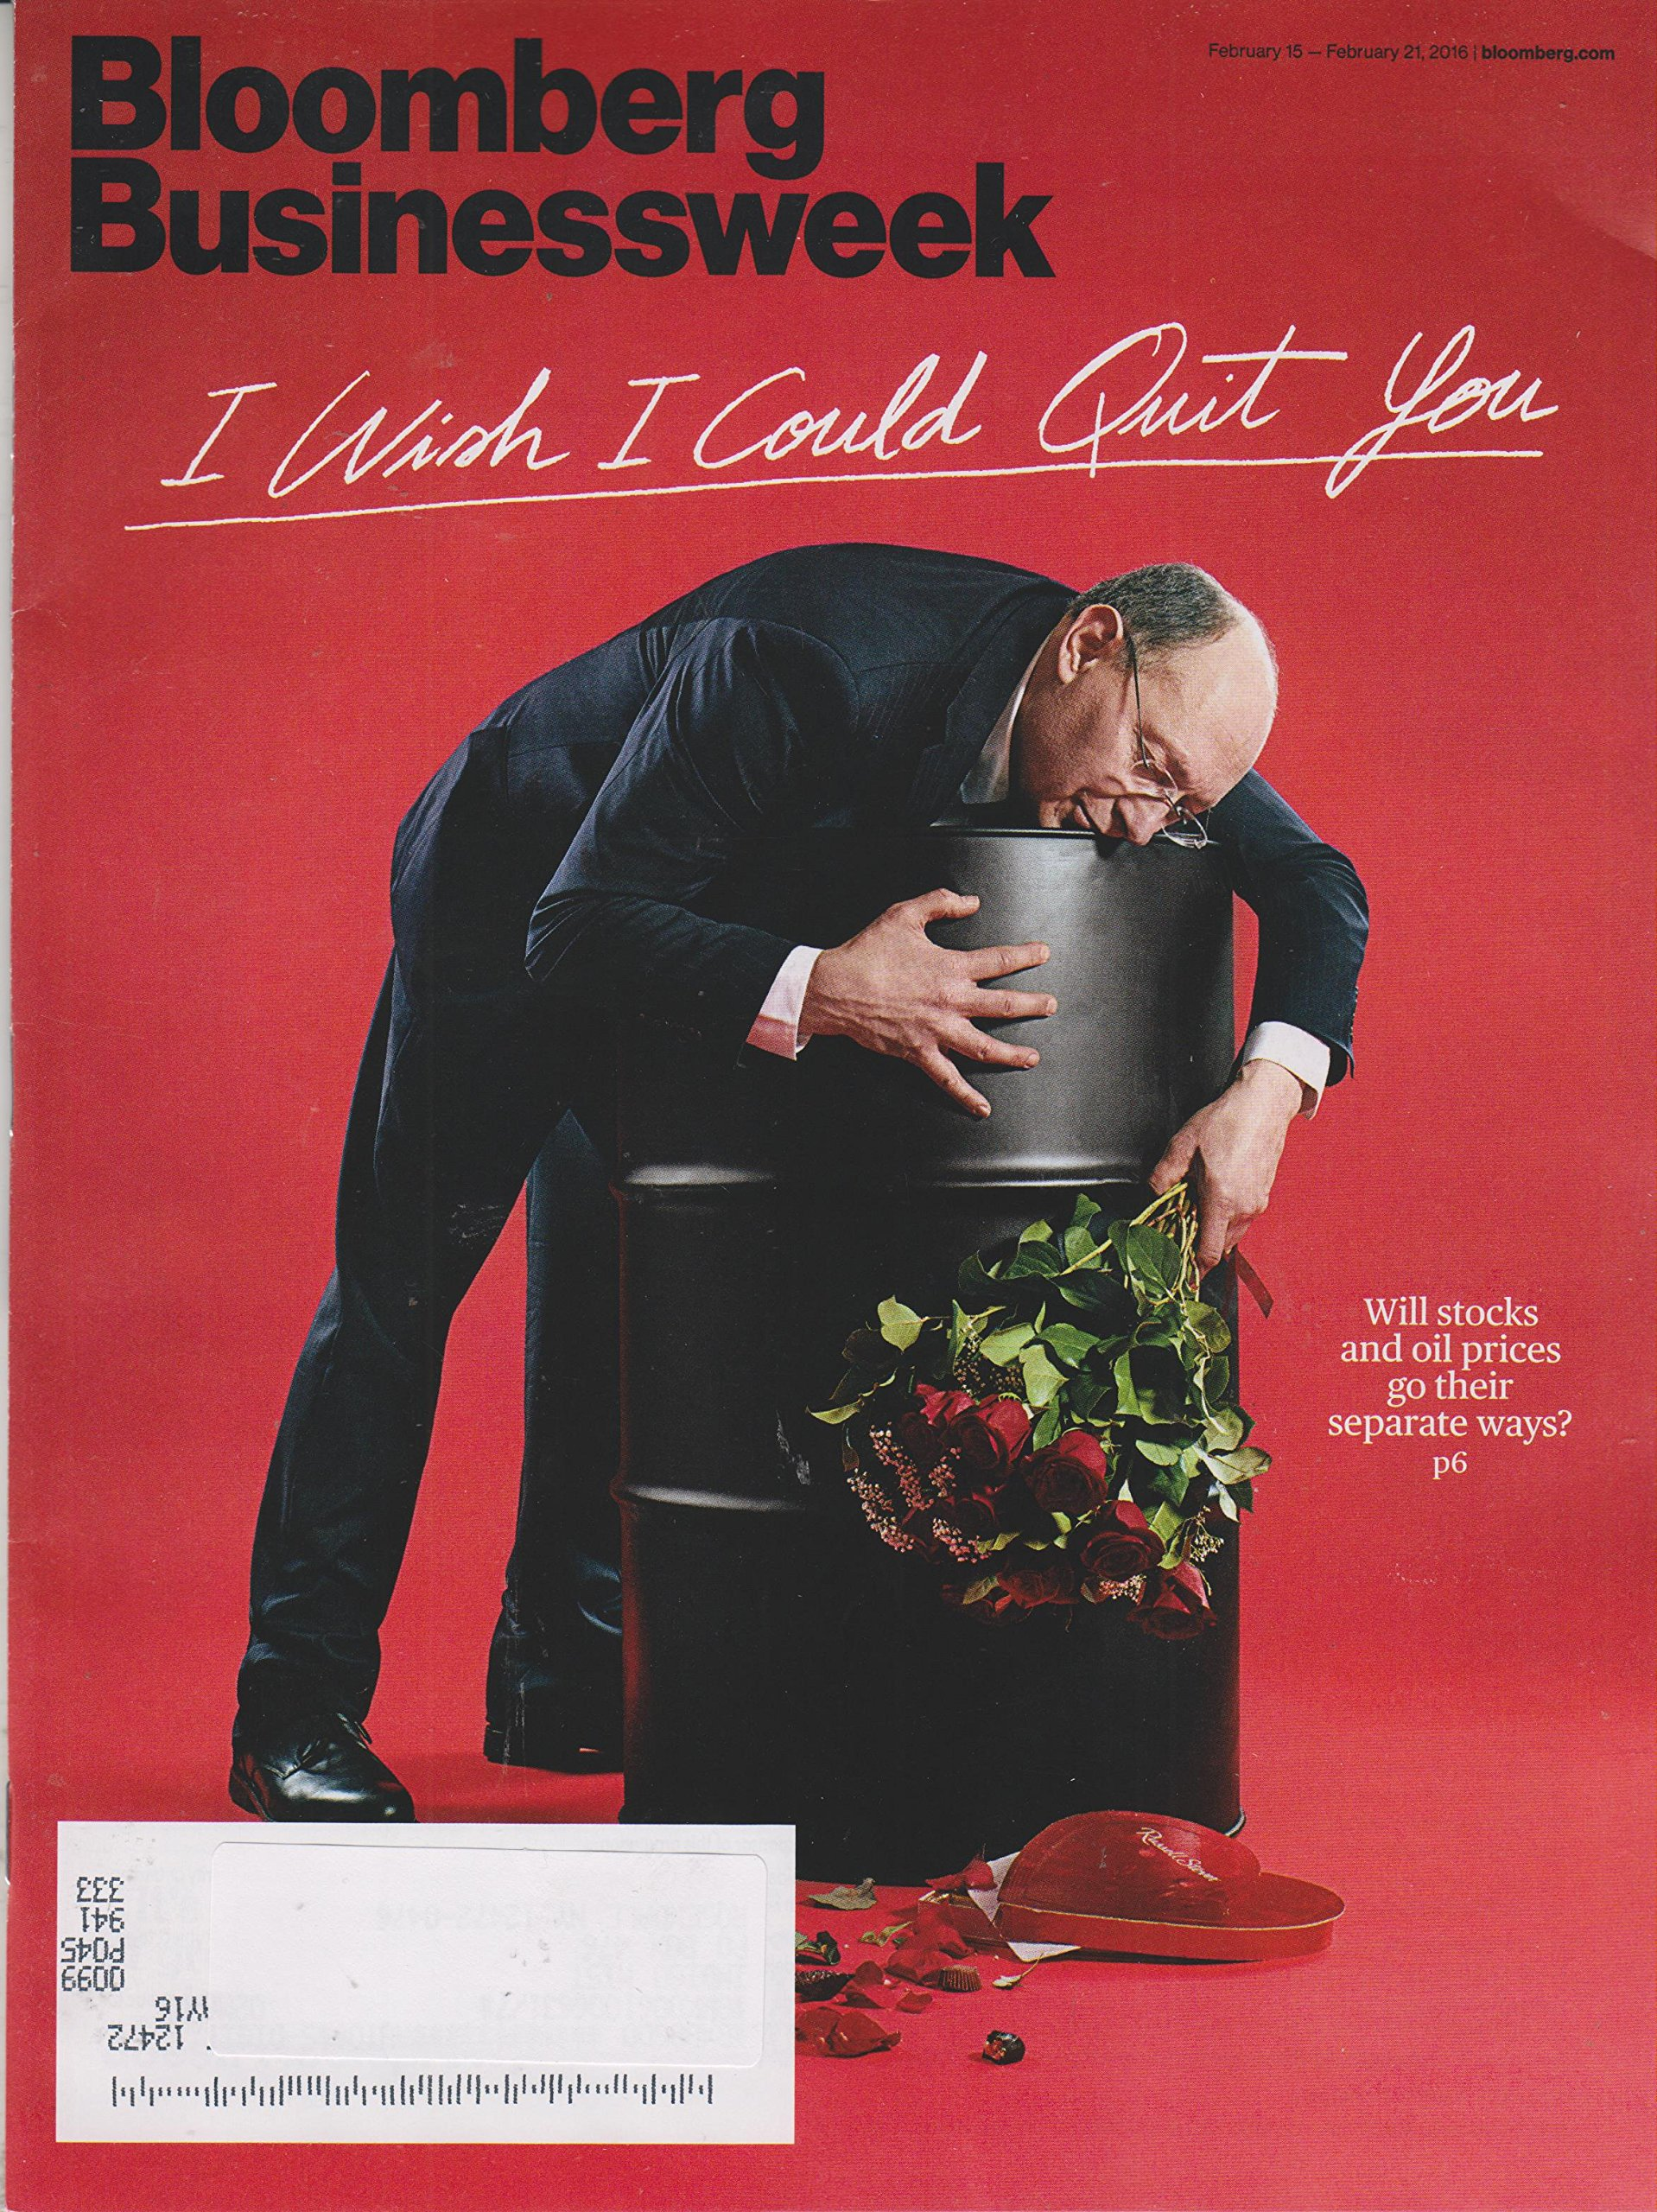 Bloomberg Businessweek February 15-21, 2016 I Wish I Could Quit You pdf